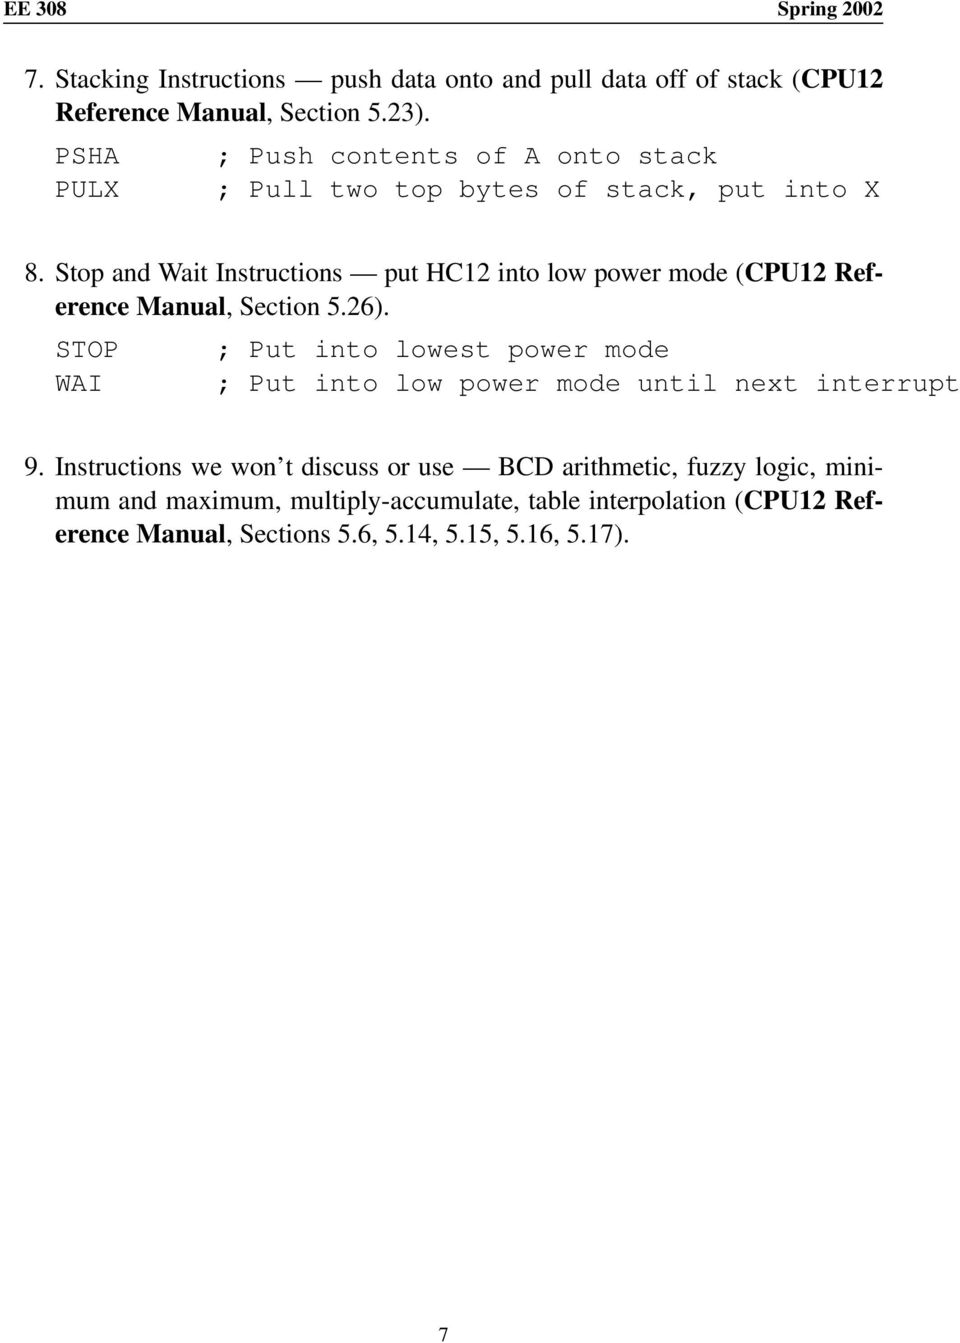 Stop and Wait Instructions put HC12 into low power mode (CPU12 Reference Manual, Section 5.26).